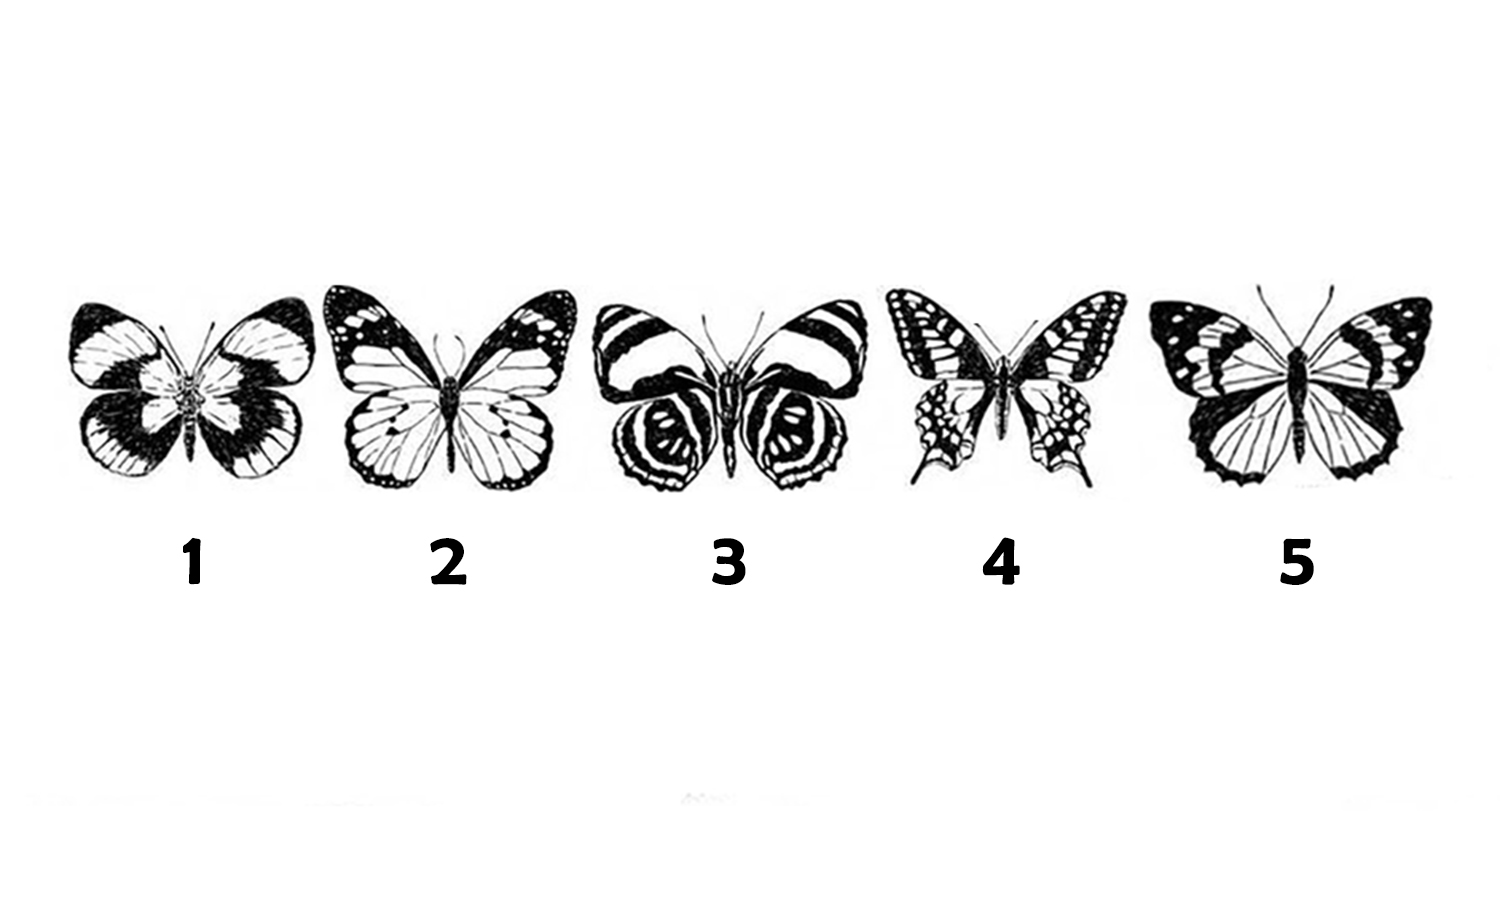 Pick a Butterfly to Find Out What to Focus This Week